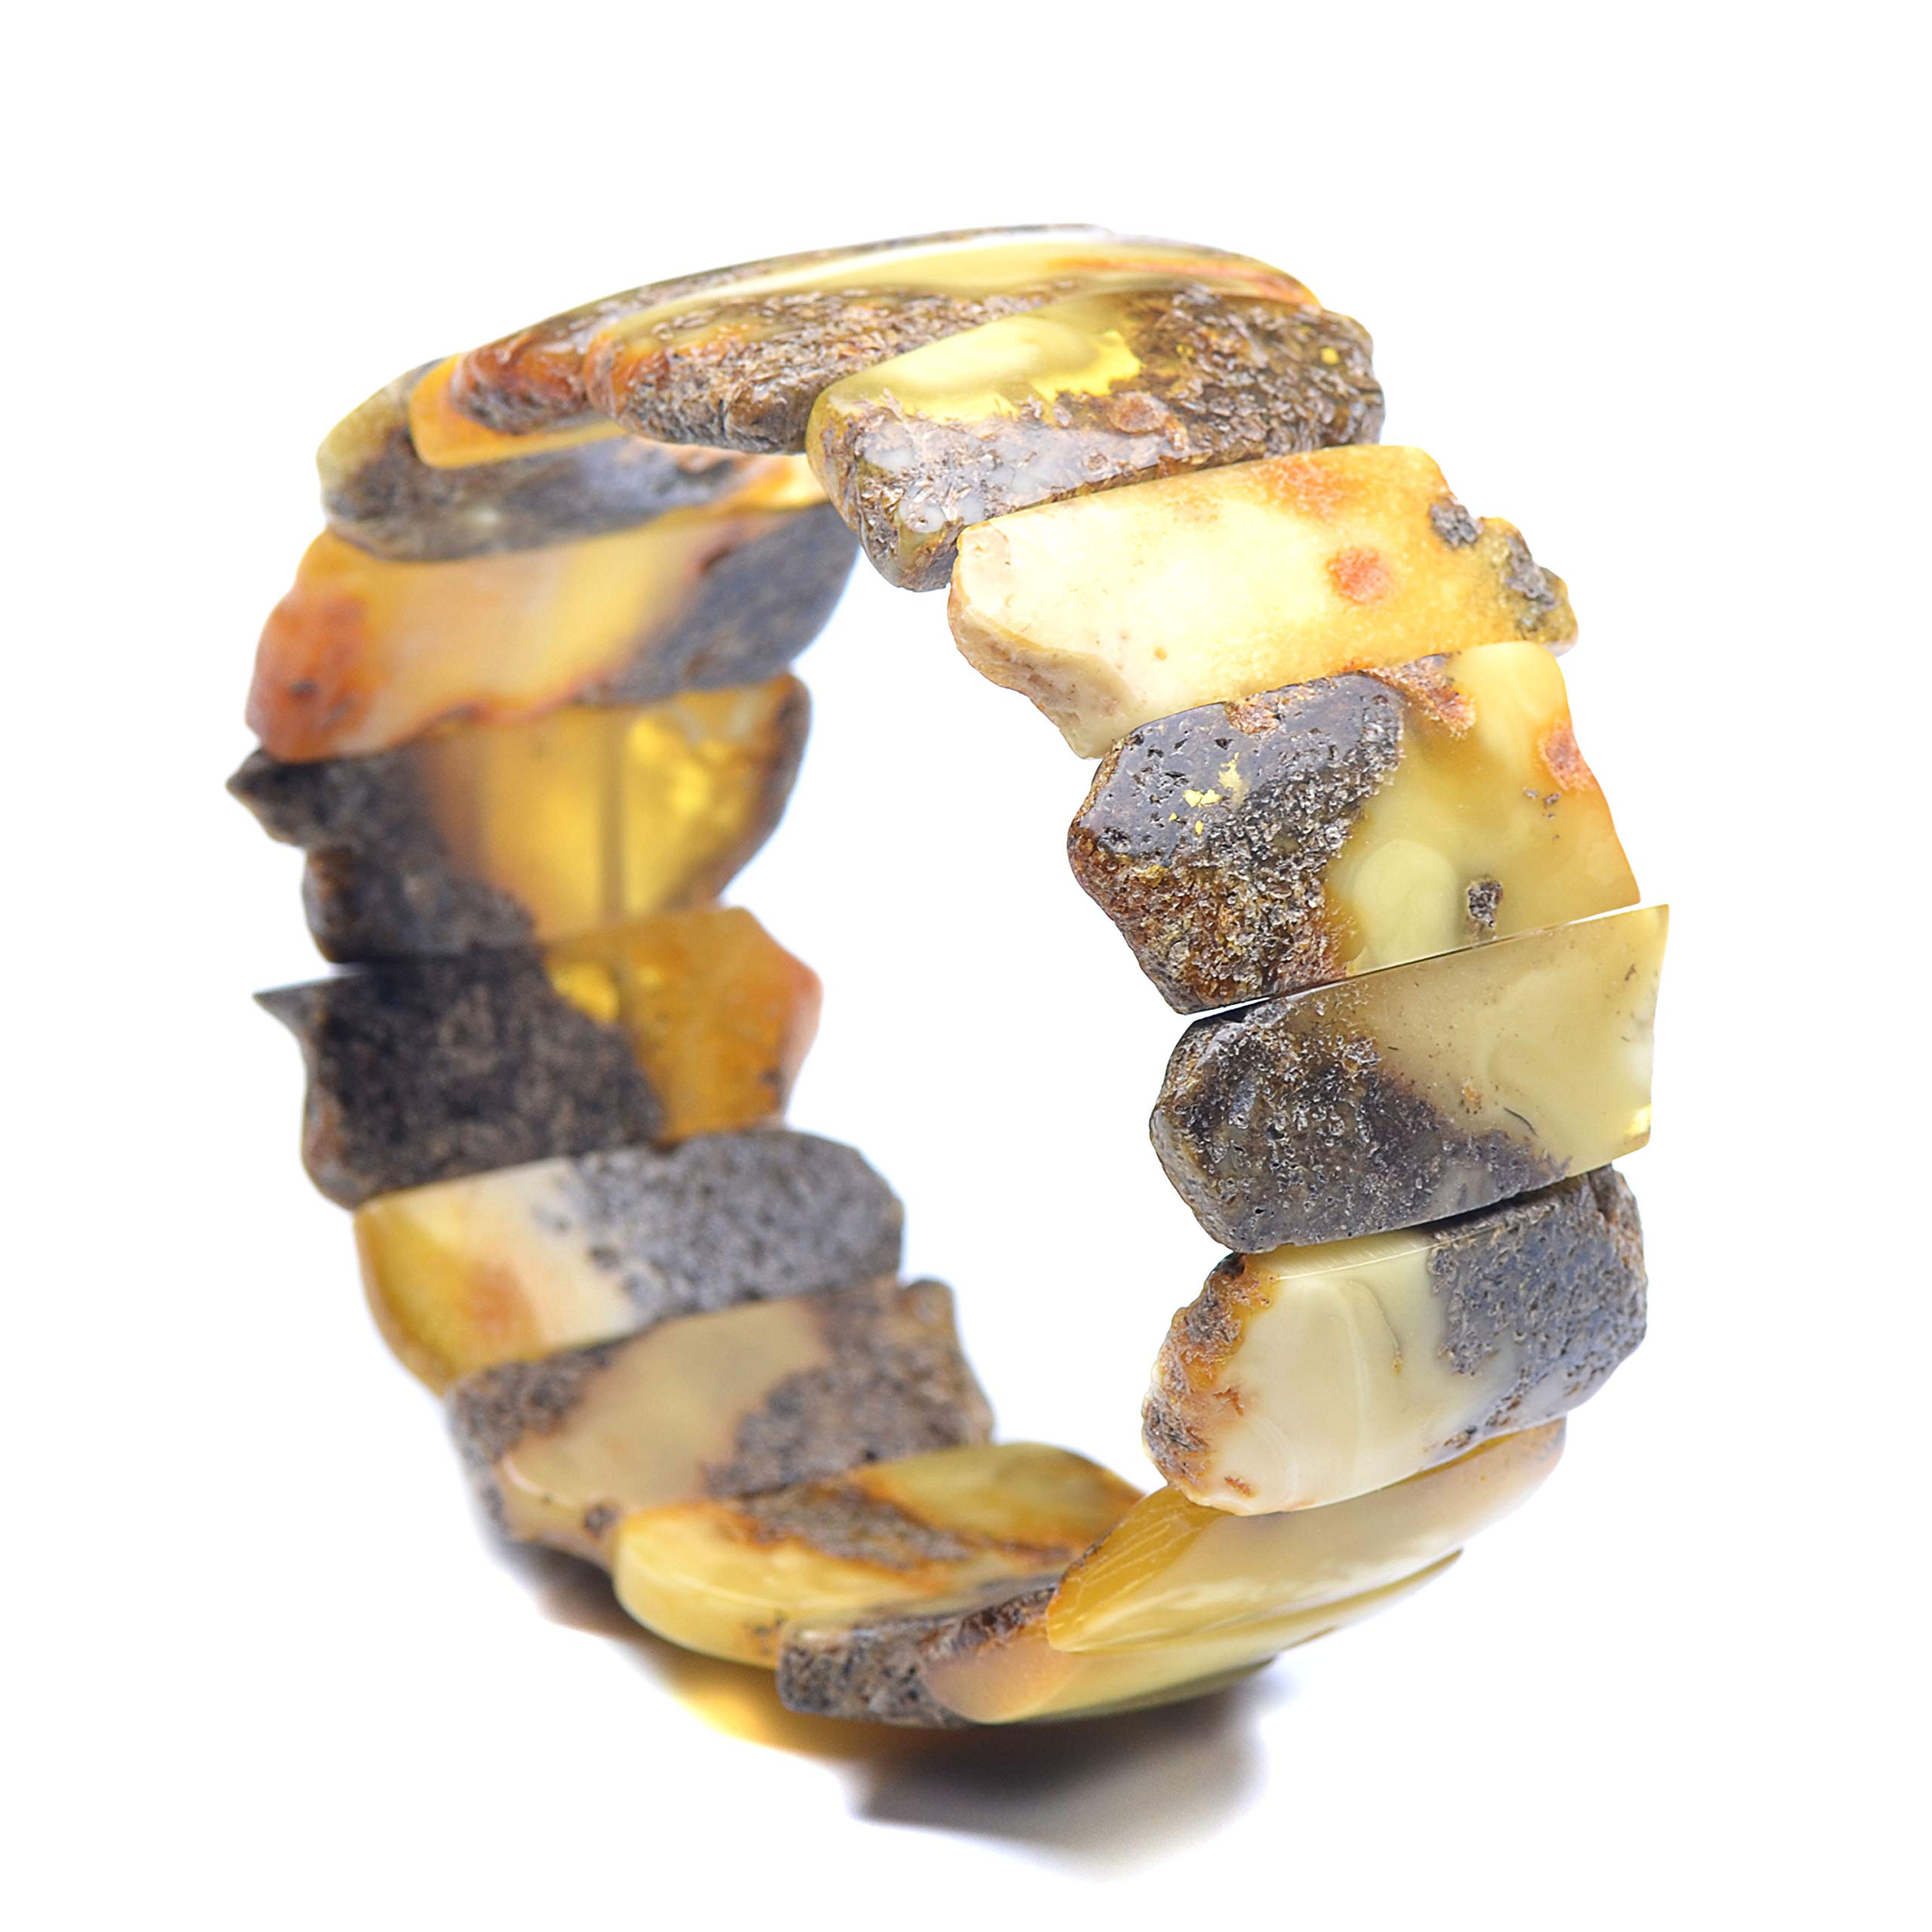 Exclusive Amber Bracelet - Unique Amber Jewelry - Unique Bracelet - Vintage Bracelet - Vintage Amber Bracelet by Genuine Amber (Image #2)